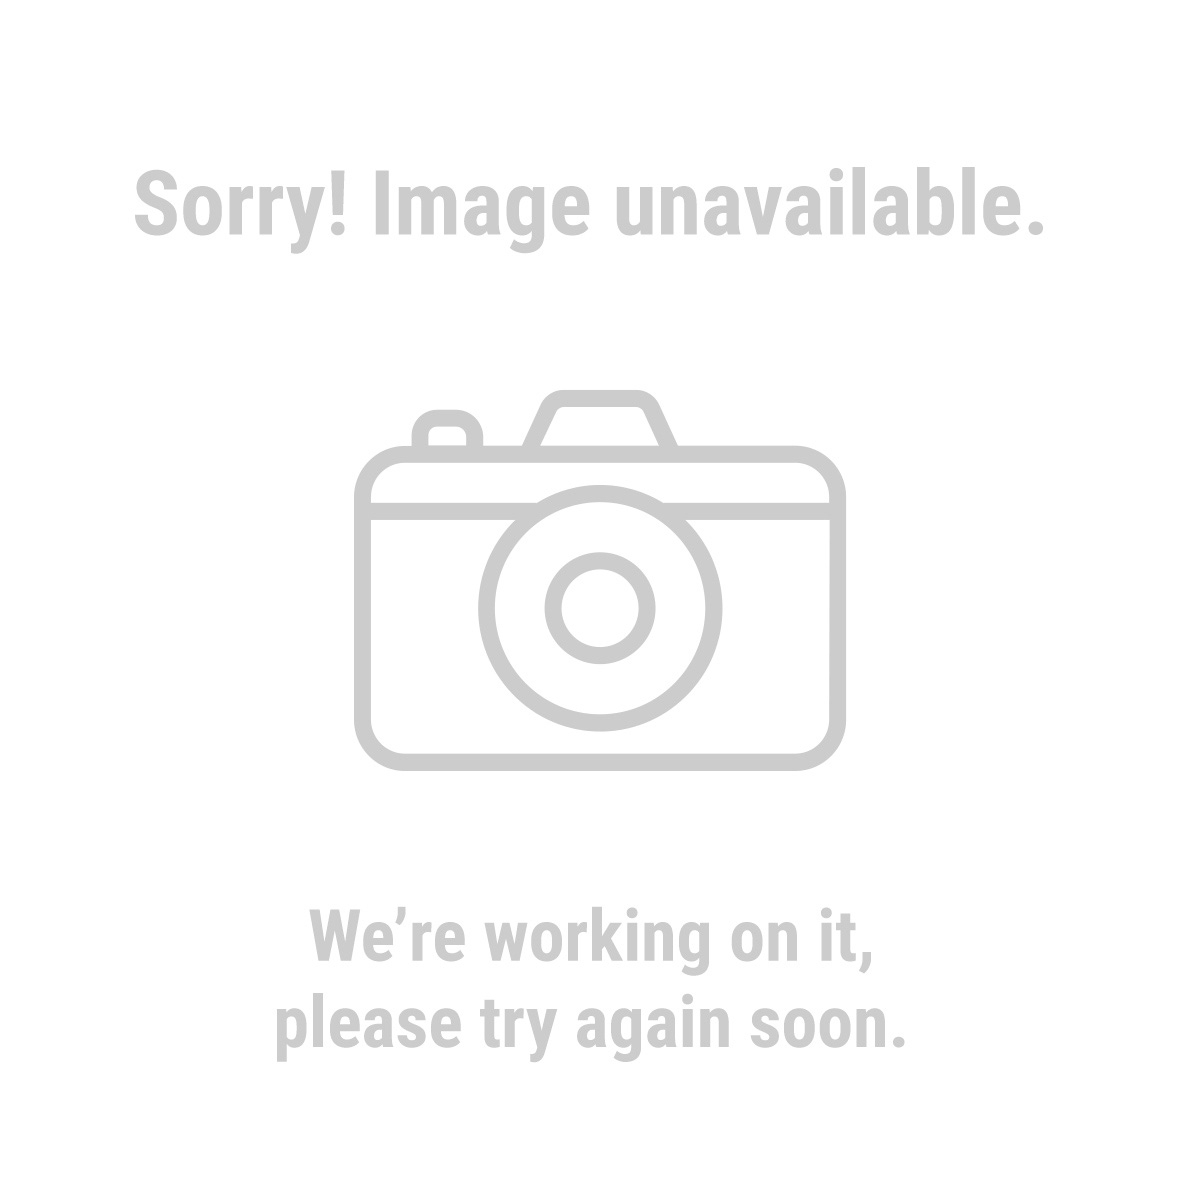 93789 Pack of 10 Mini Utility Blades